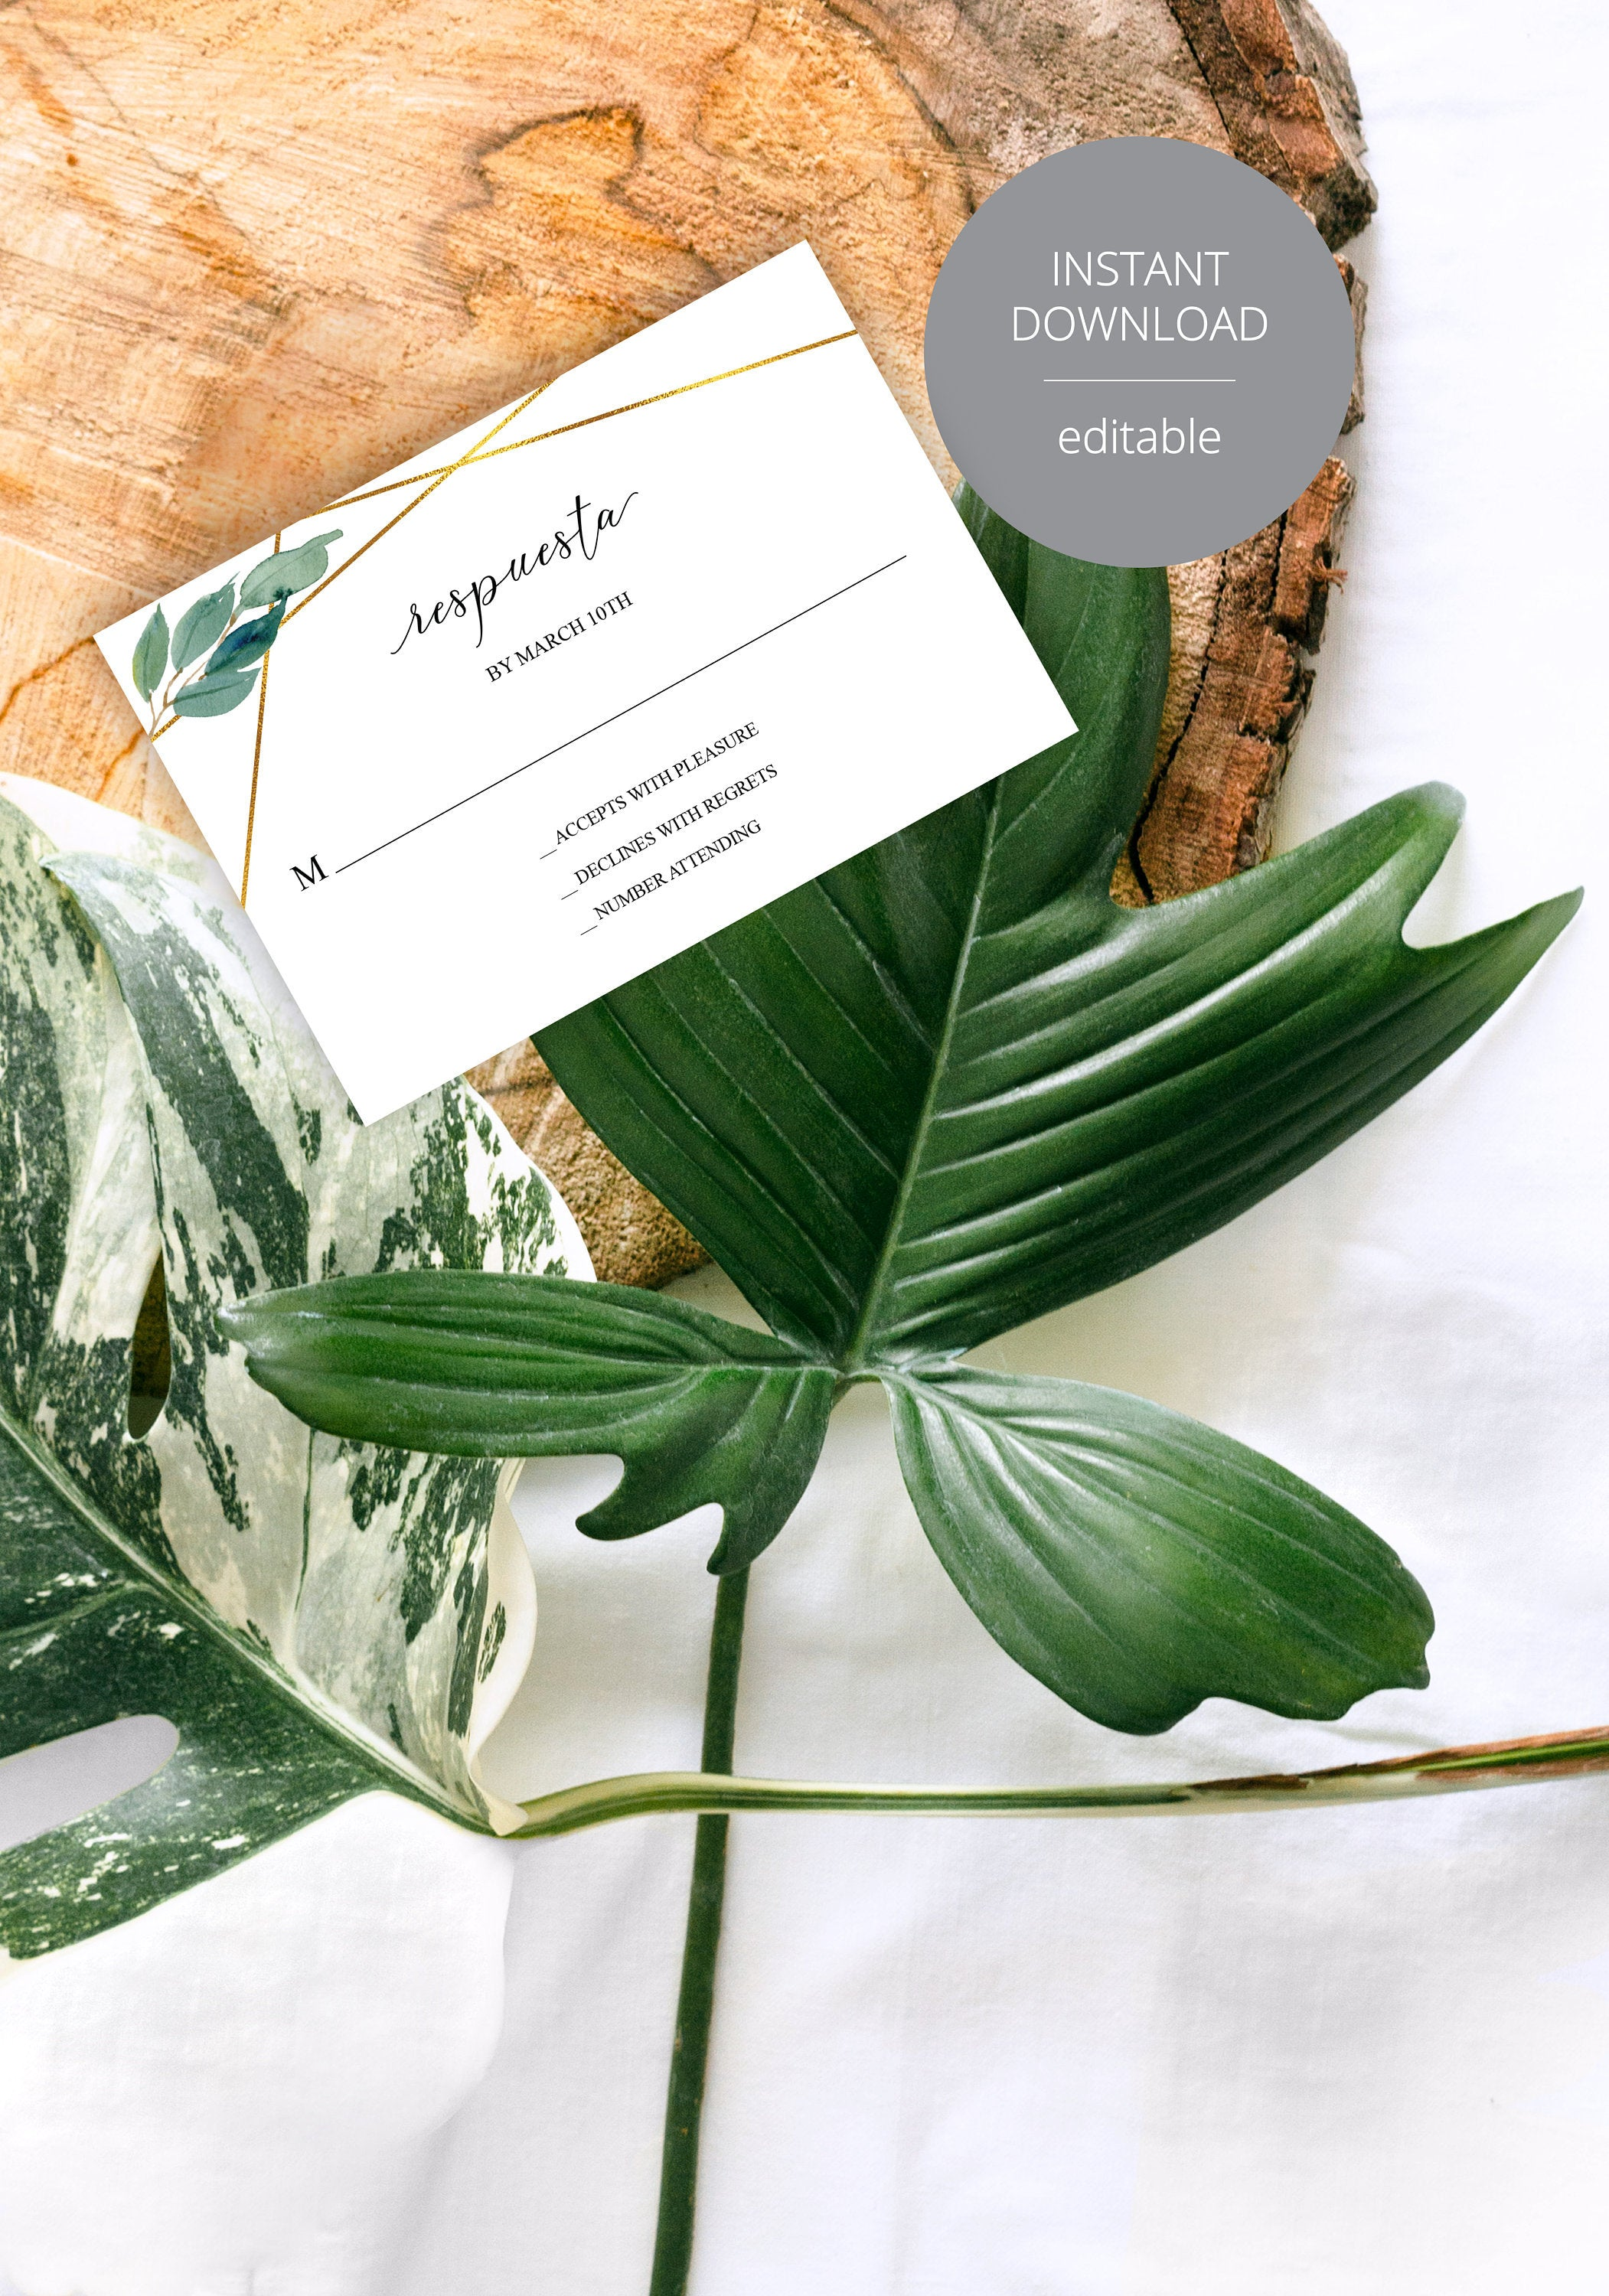 Spanish RSVP Card Template, Wedding RSVP, Response Card, RSVP cards, Geometric Wedding, Printable rsvp, Wedding Response, Greenery  - Tara